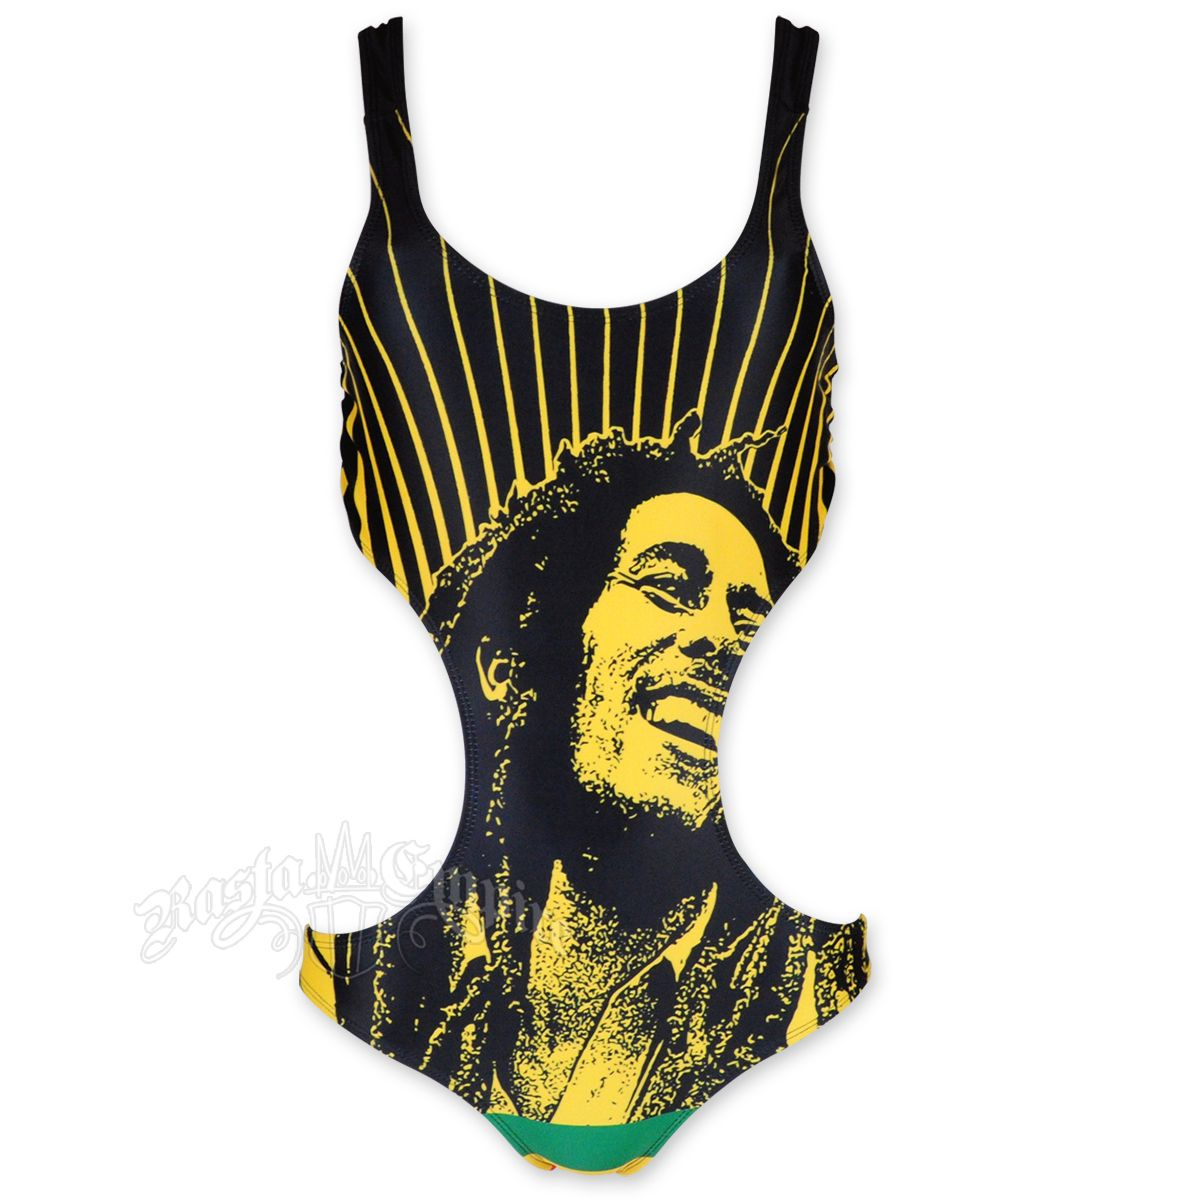 084ba8f3eadec This black monokini swimsuit features Bob Marley smiling with rays in the  background and Rasta stripes at the bottom.